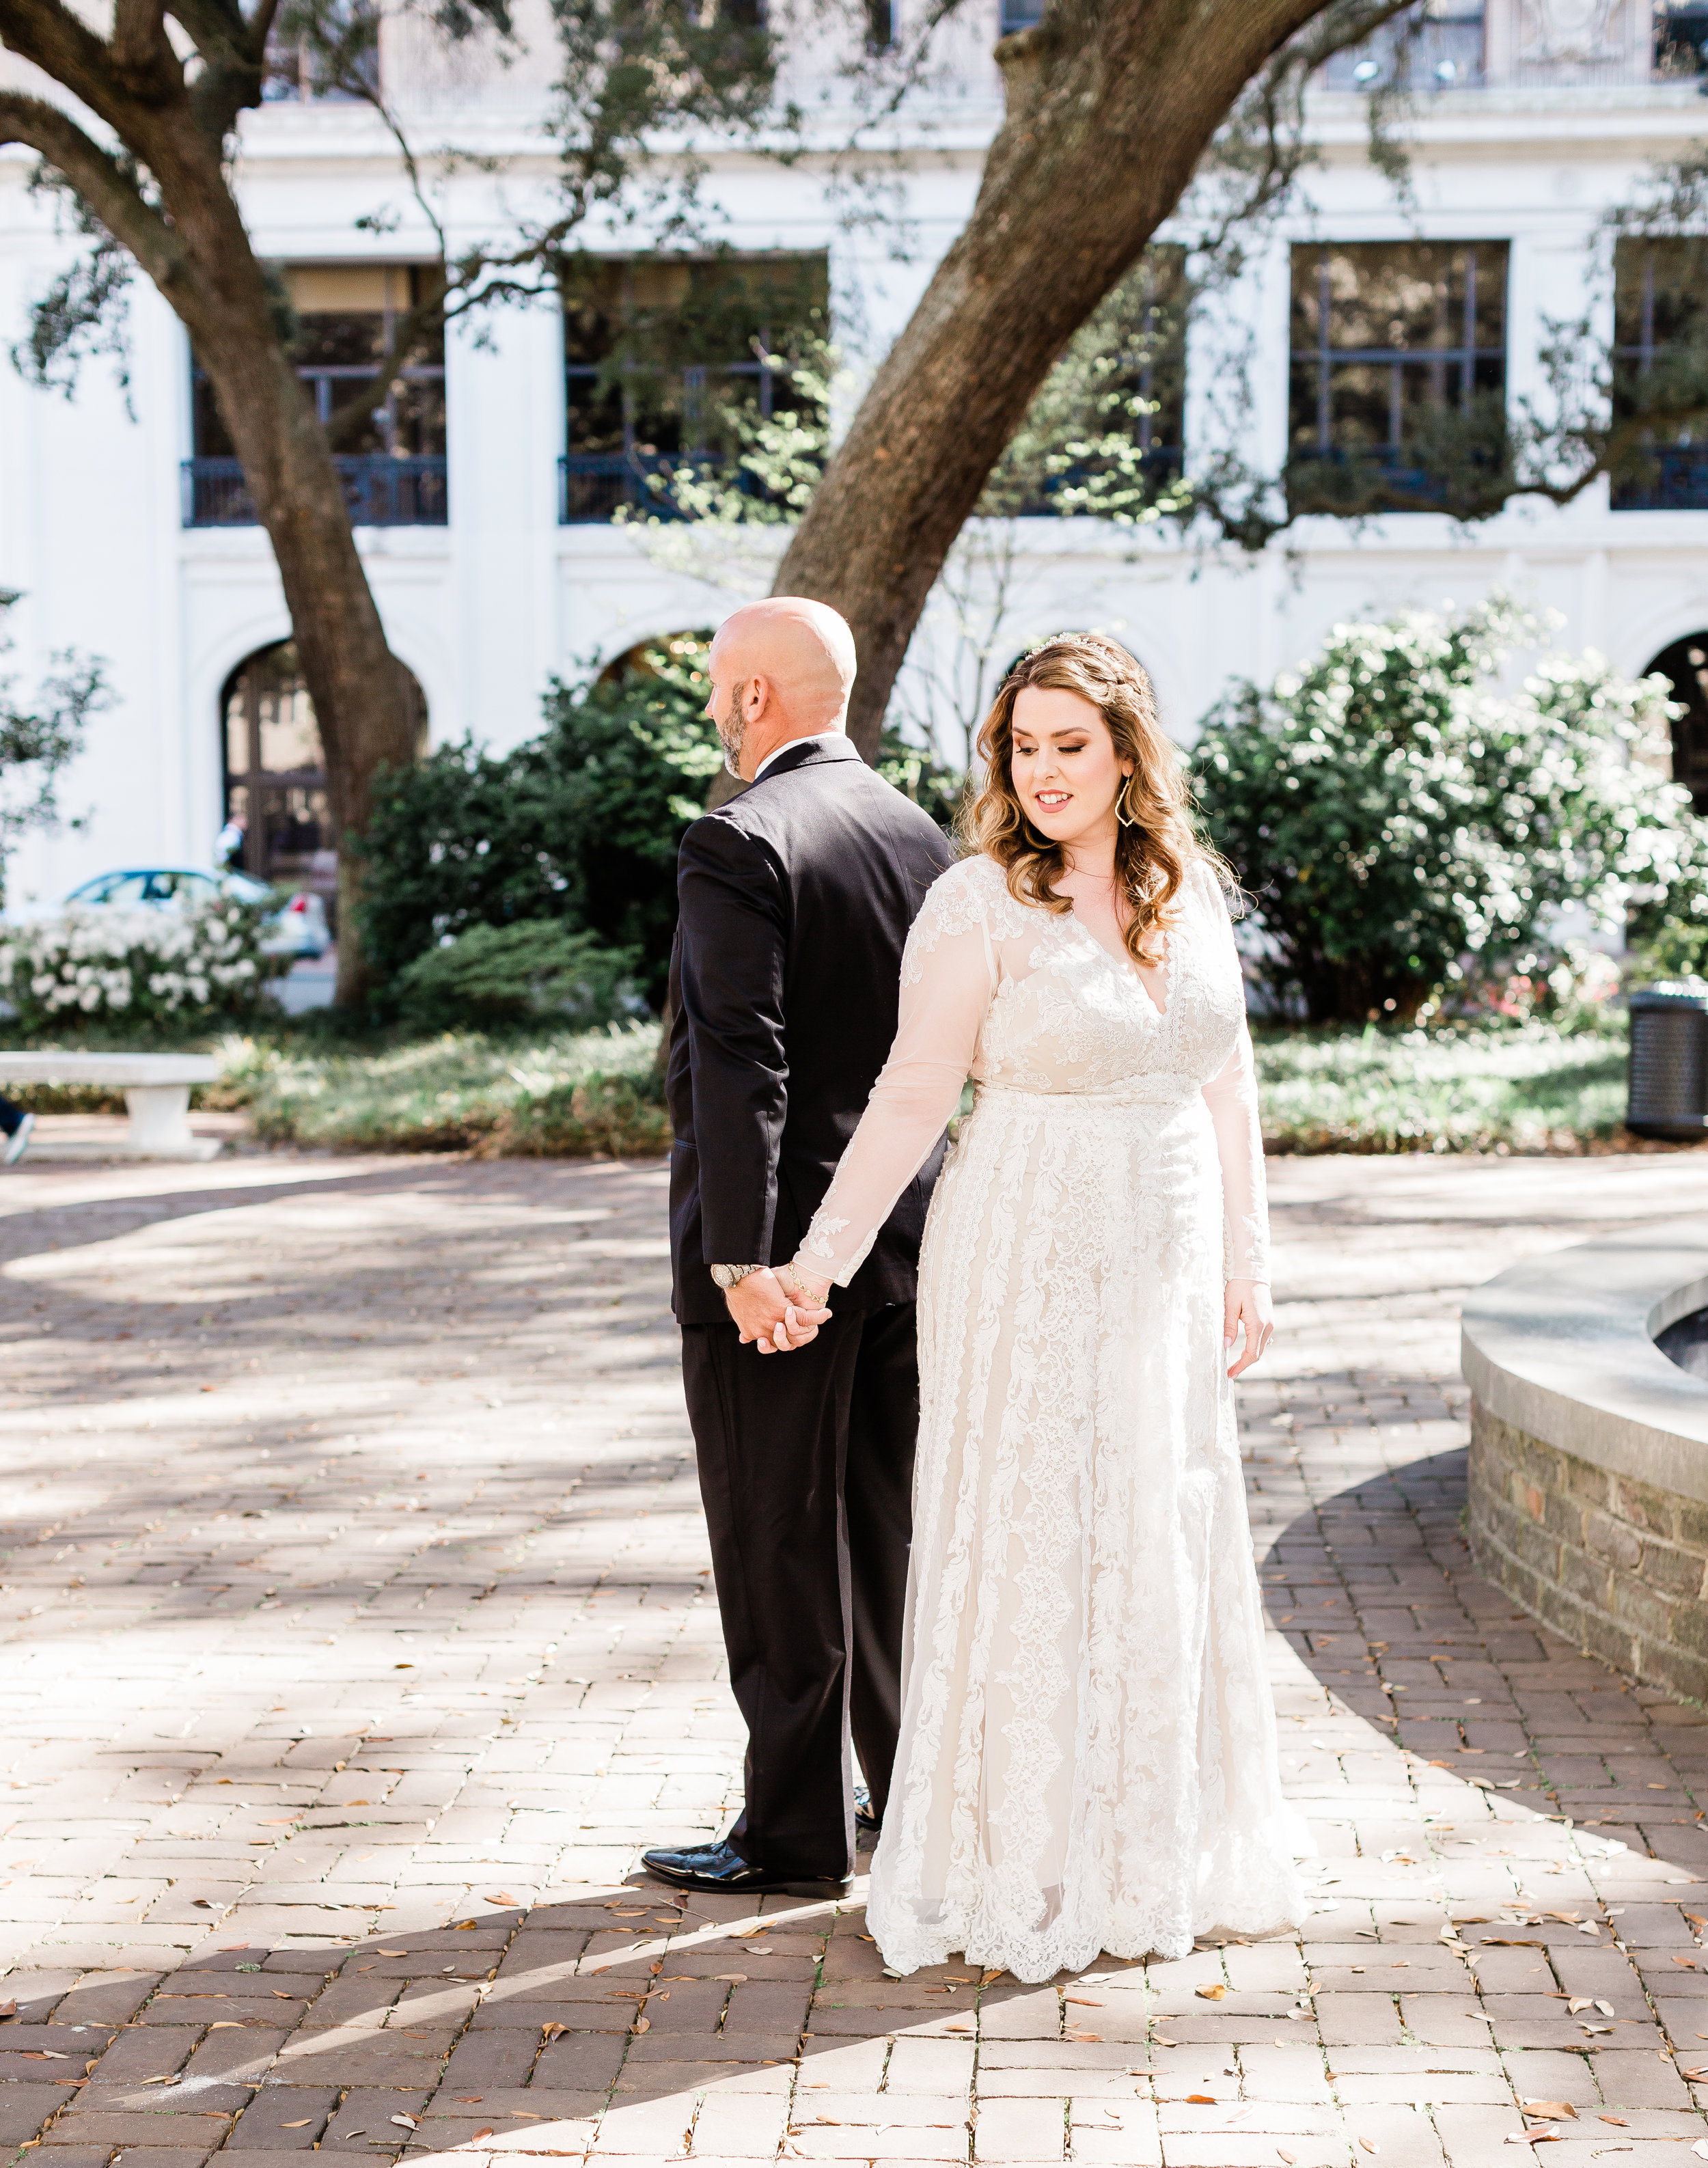 20190323-Georgia-andaz hotel-Dani and Sean-Southern Lens Photography-Savannah Photographer-Apt B Photography-Vics on the river10.jpg